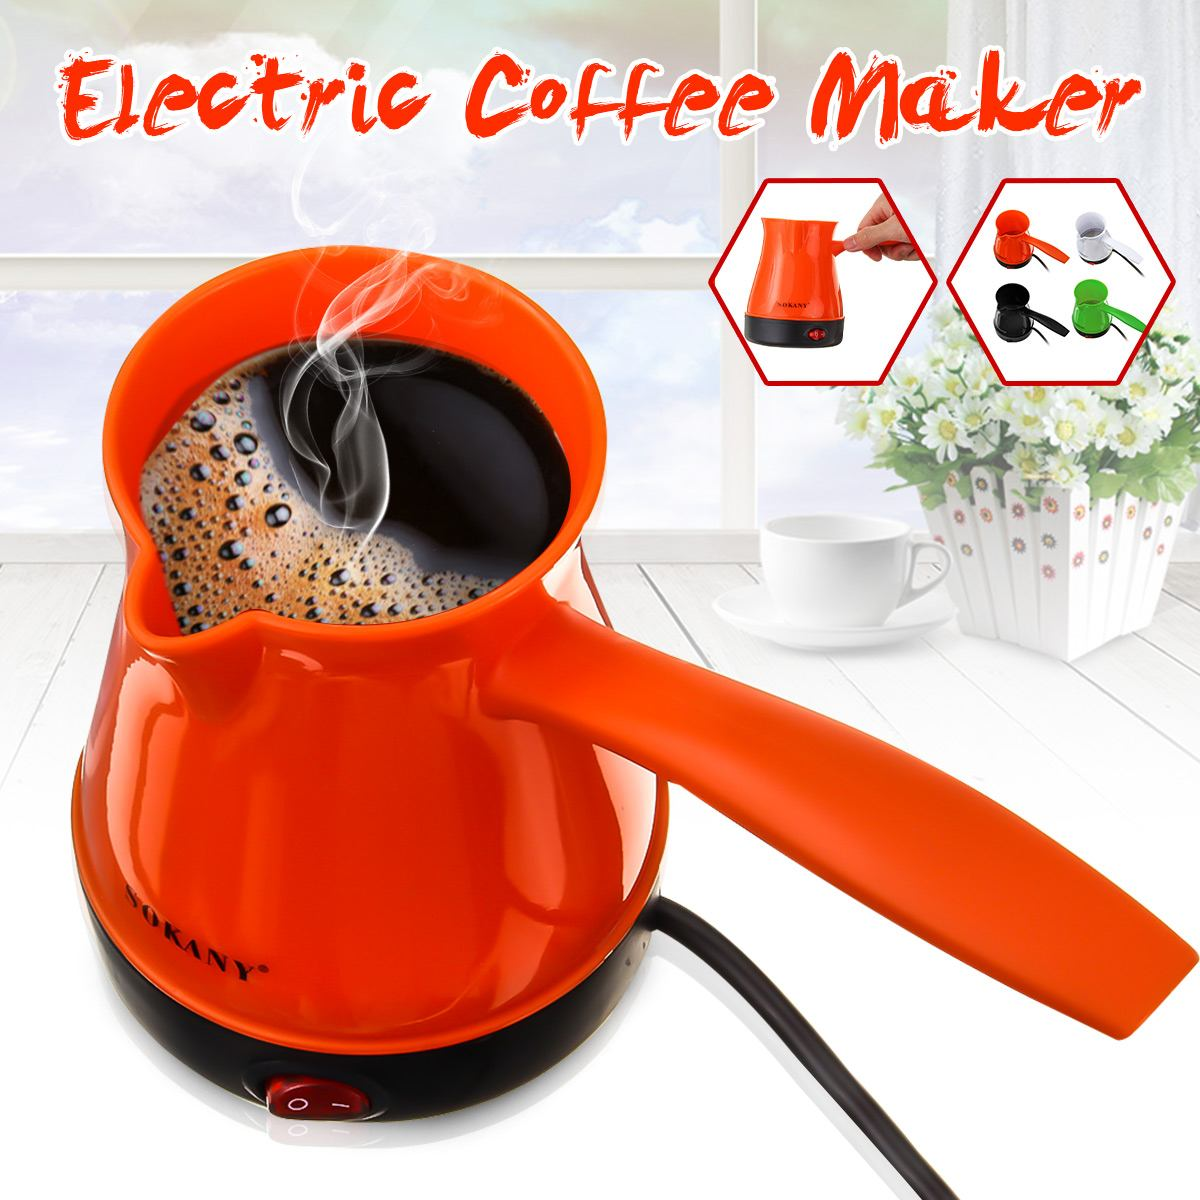 Electric Turkish Greek Coffee Maker Machine Espresso Tea Moka Multifunction Pot Food Grade ABS+Stainless Steel Anti-slip Base